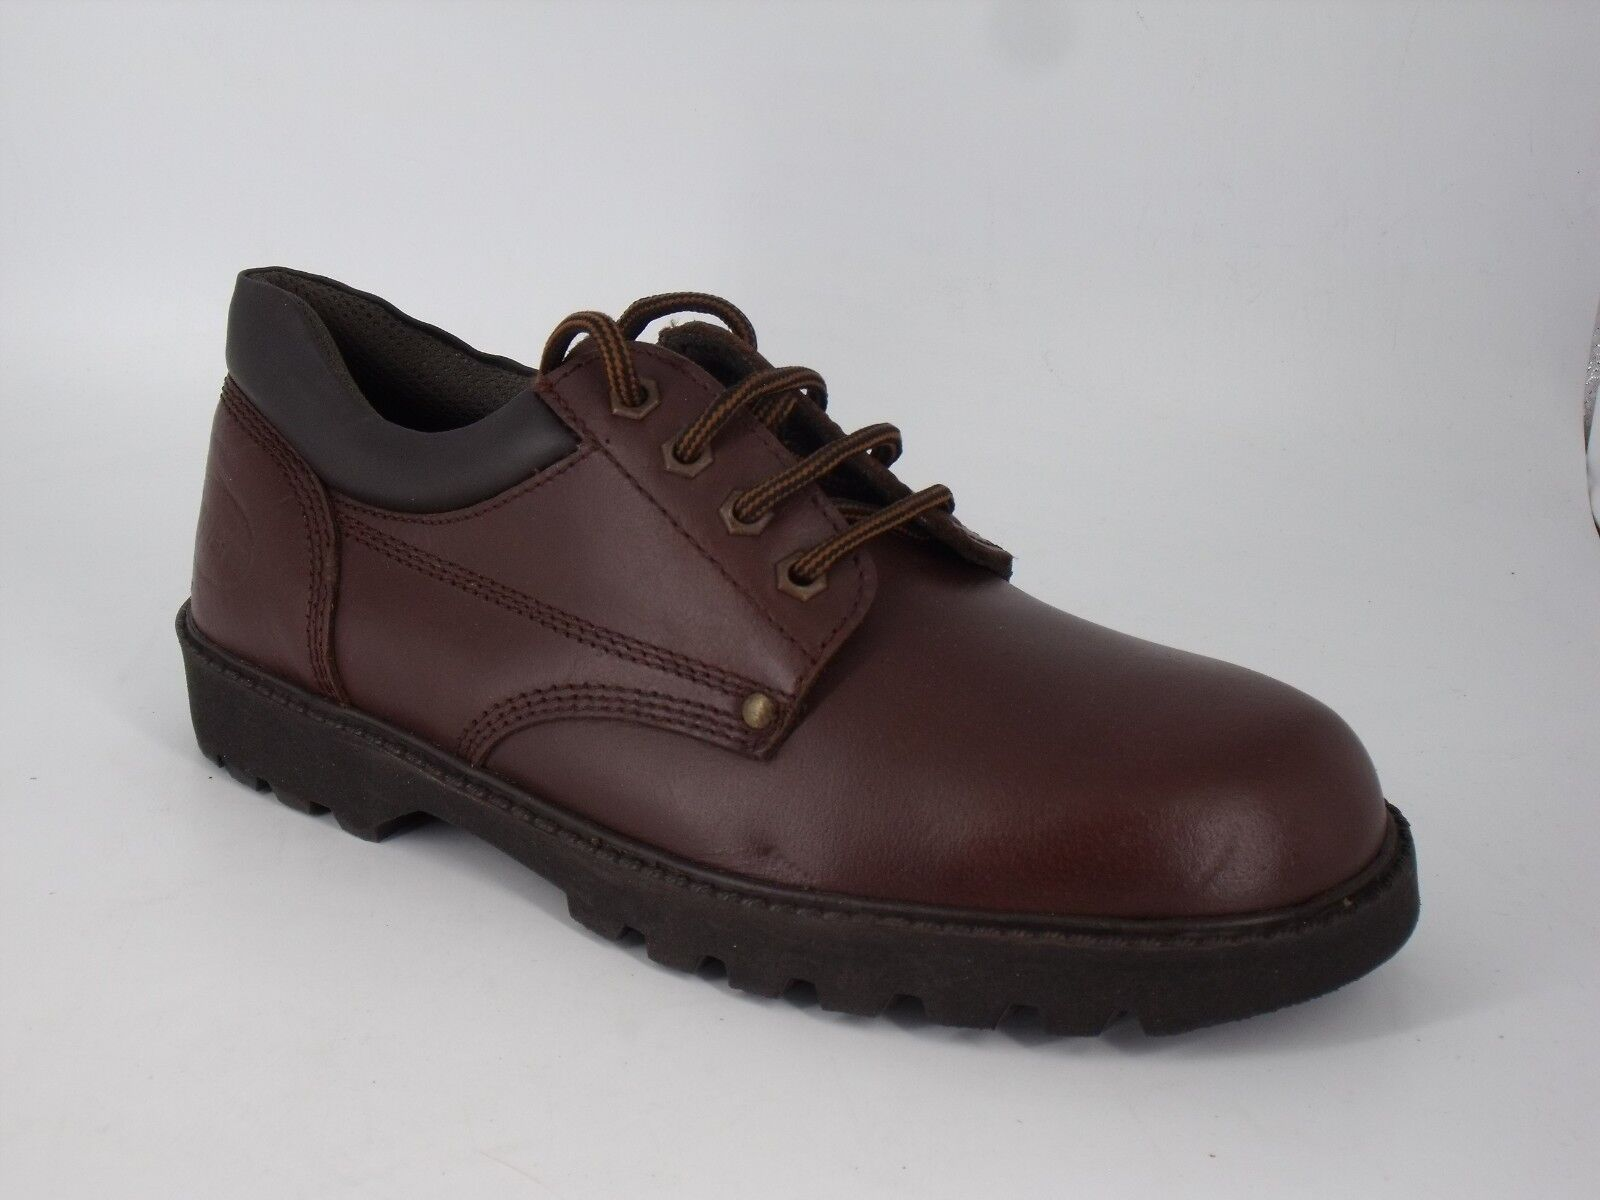 Cliford James Men's Leather Lace Up shoes's Brown Size NH091 AC 06